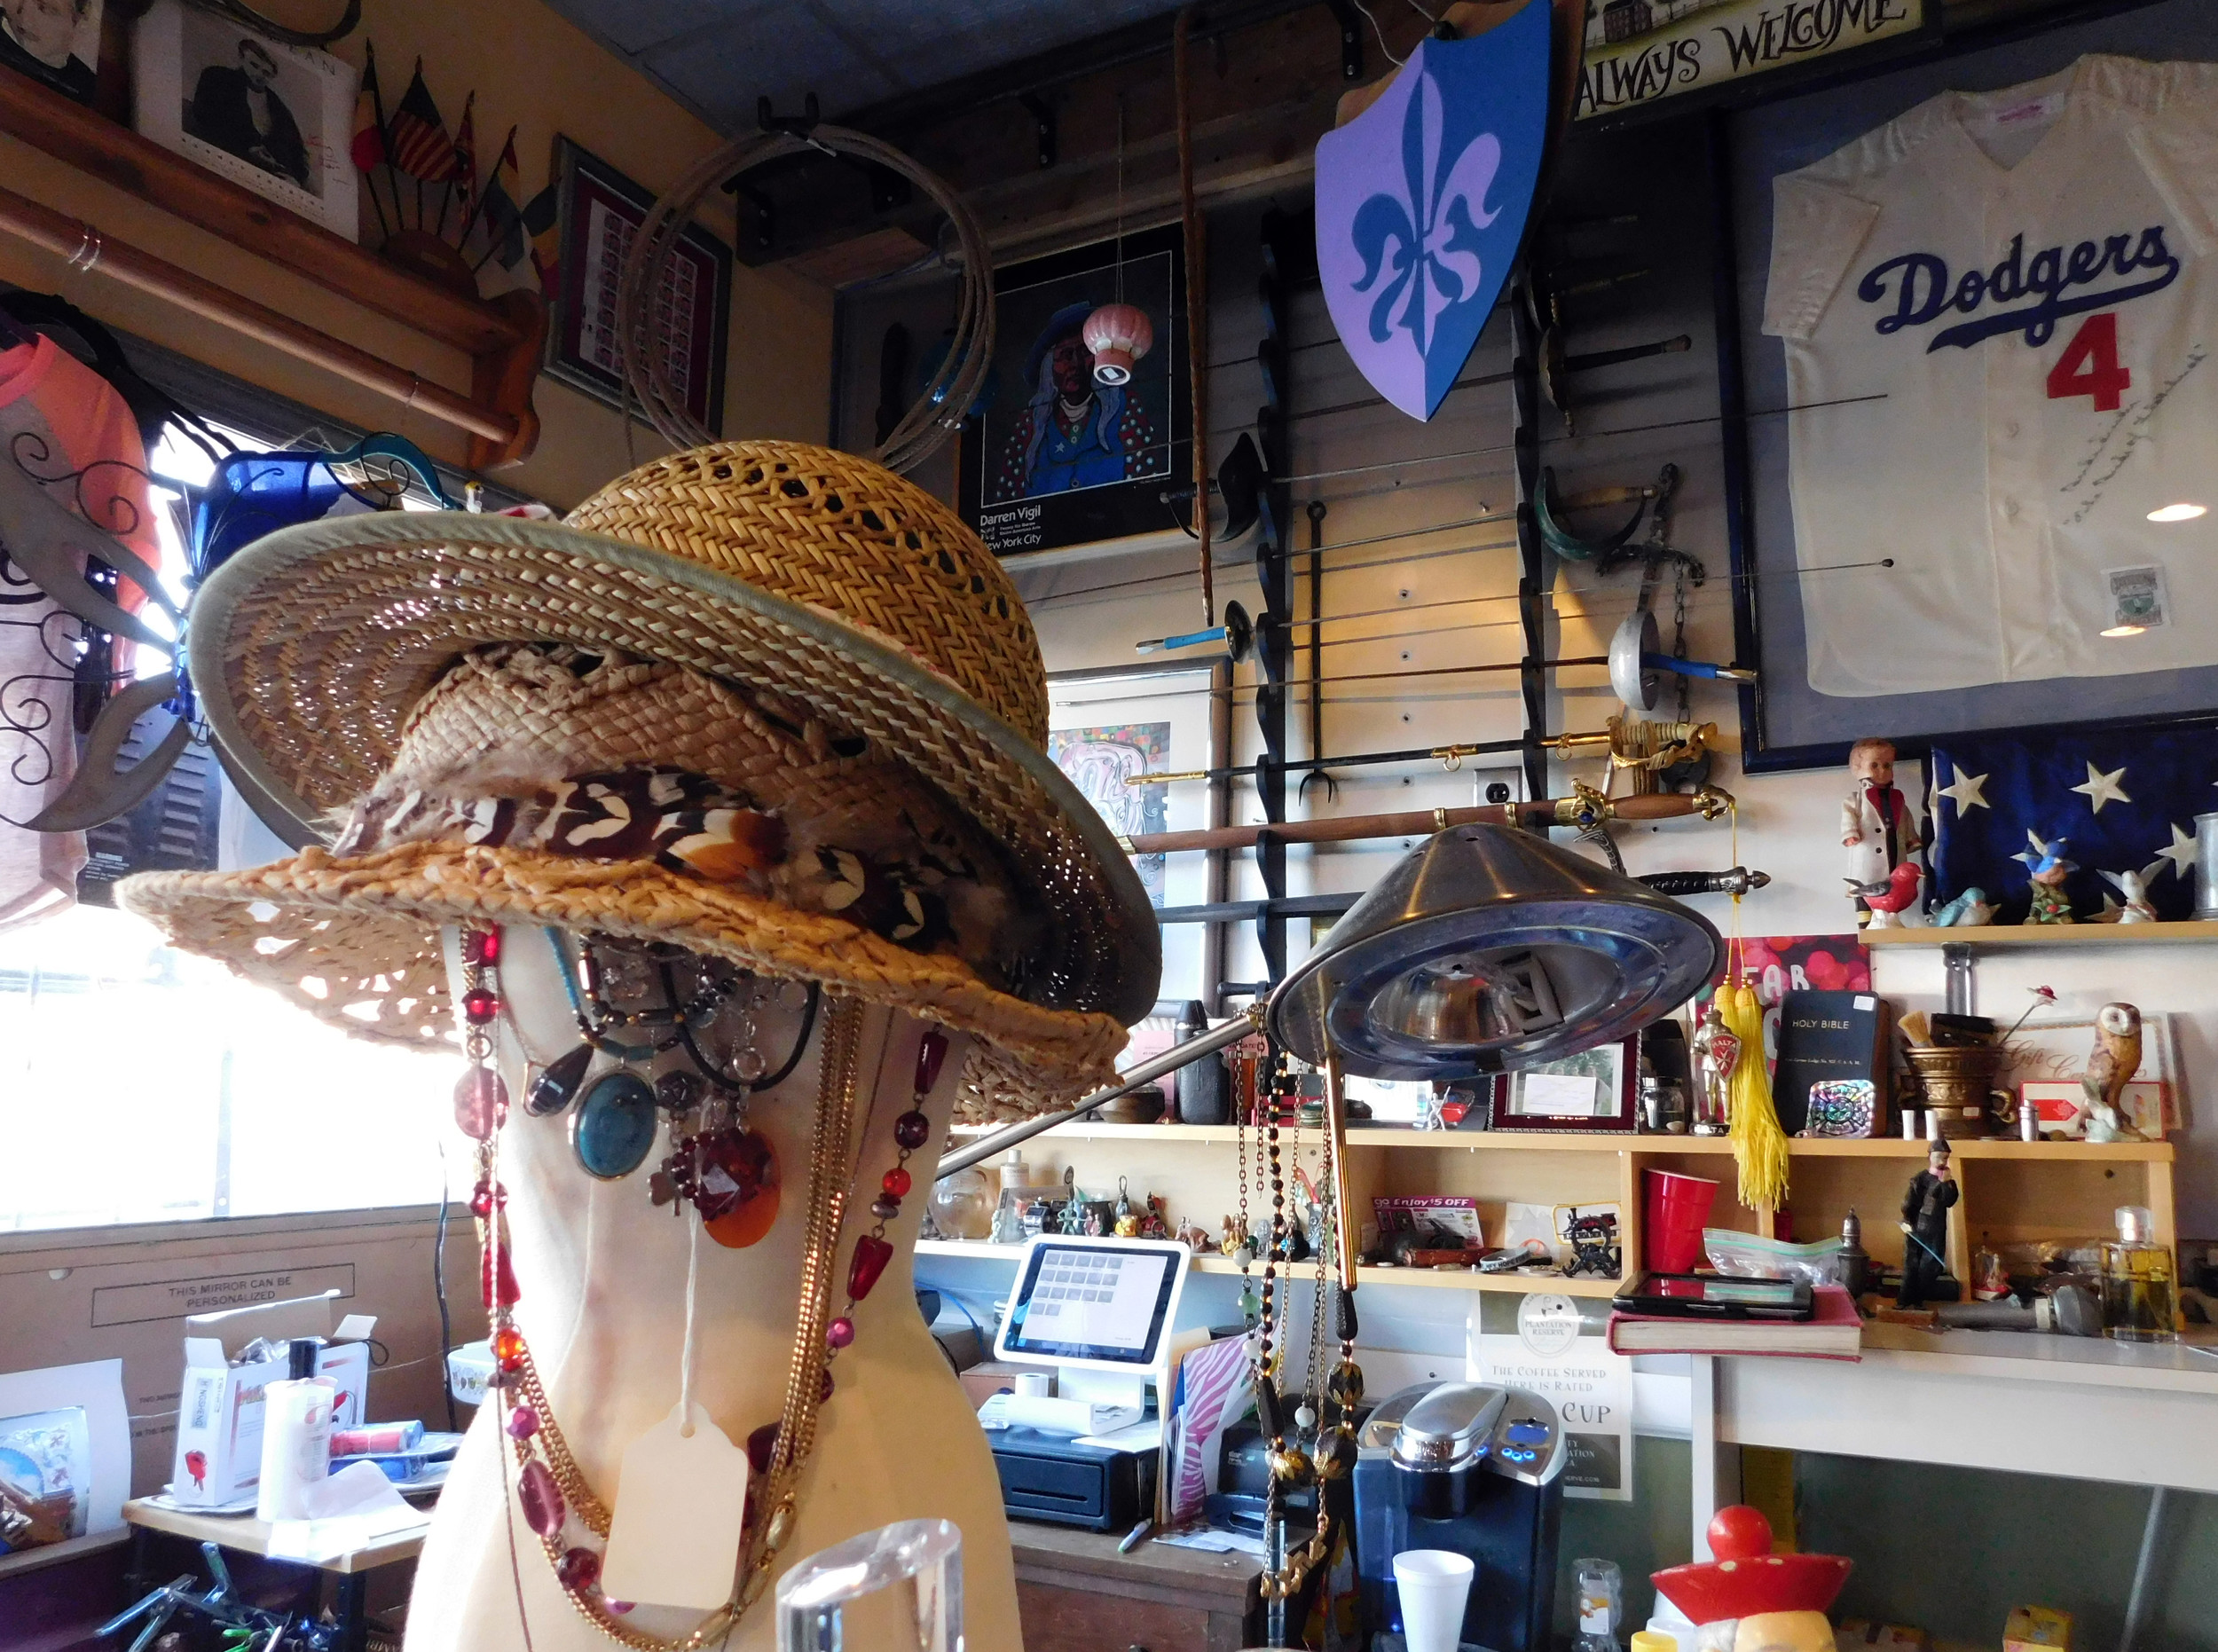 Anything from vintage clothing to jewelry, sports memorabilia and antique weapons can be found tucked away in some corner of the Long Island Trading Post.